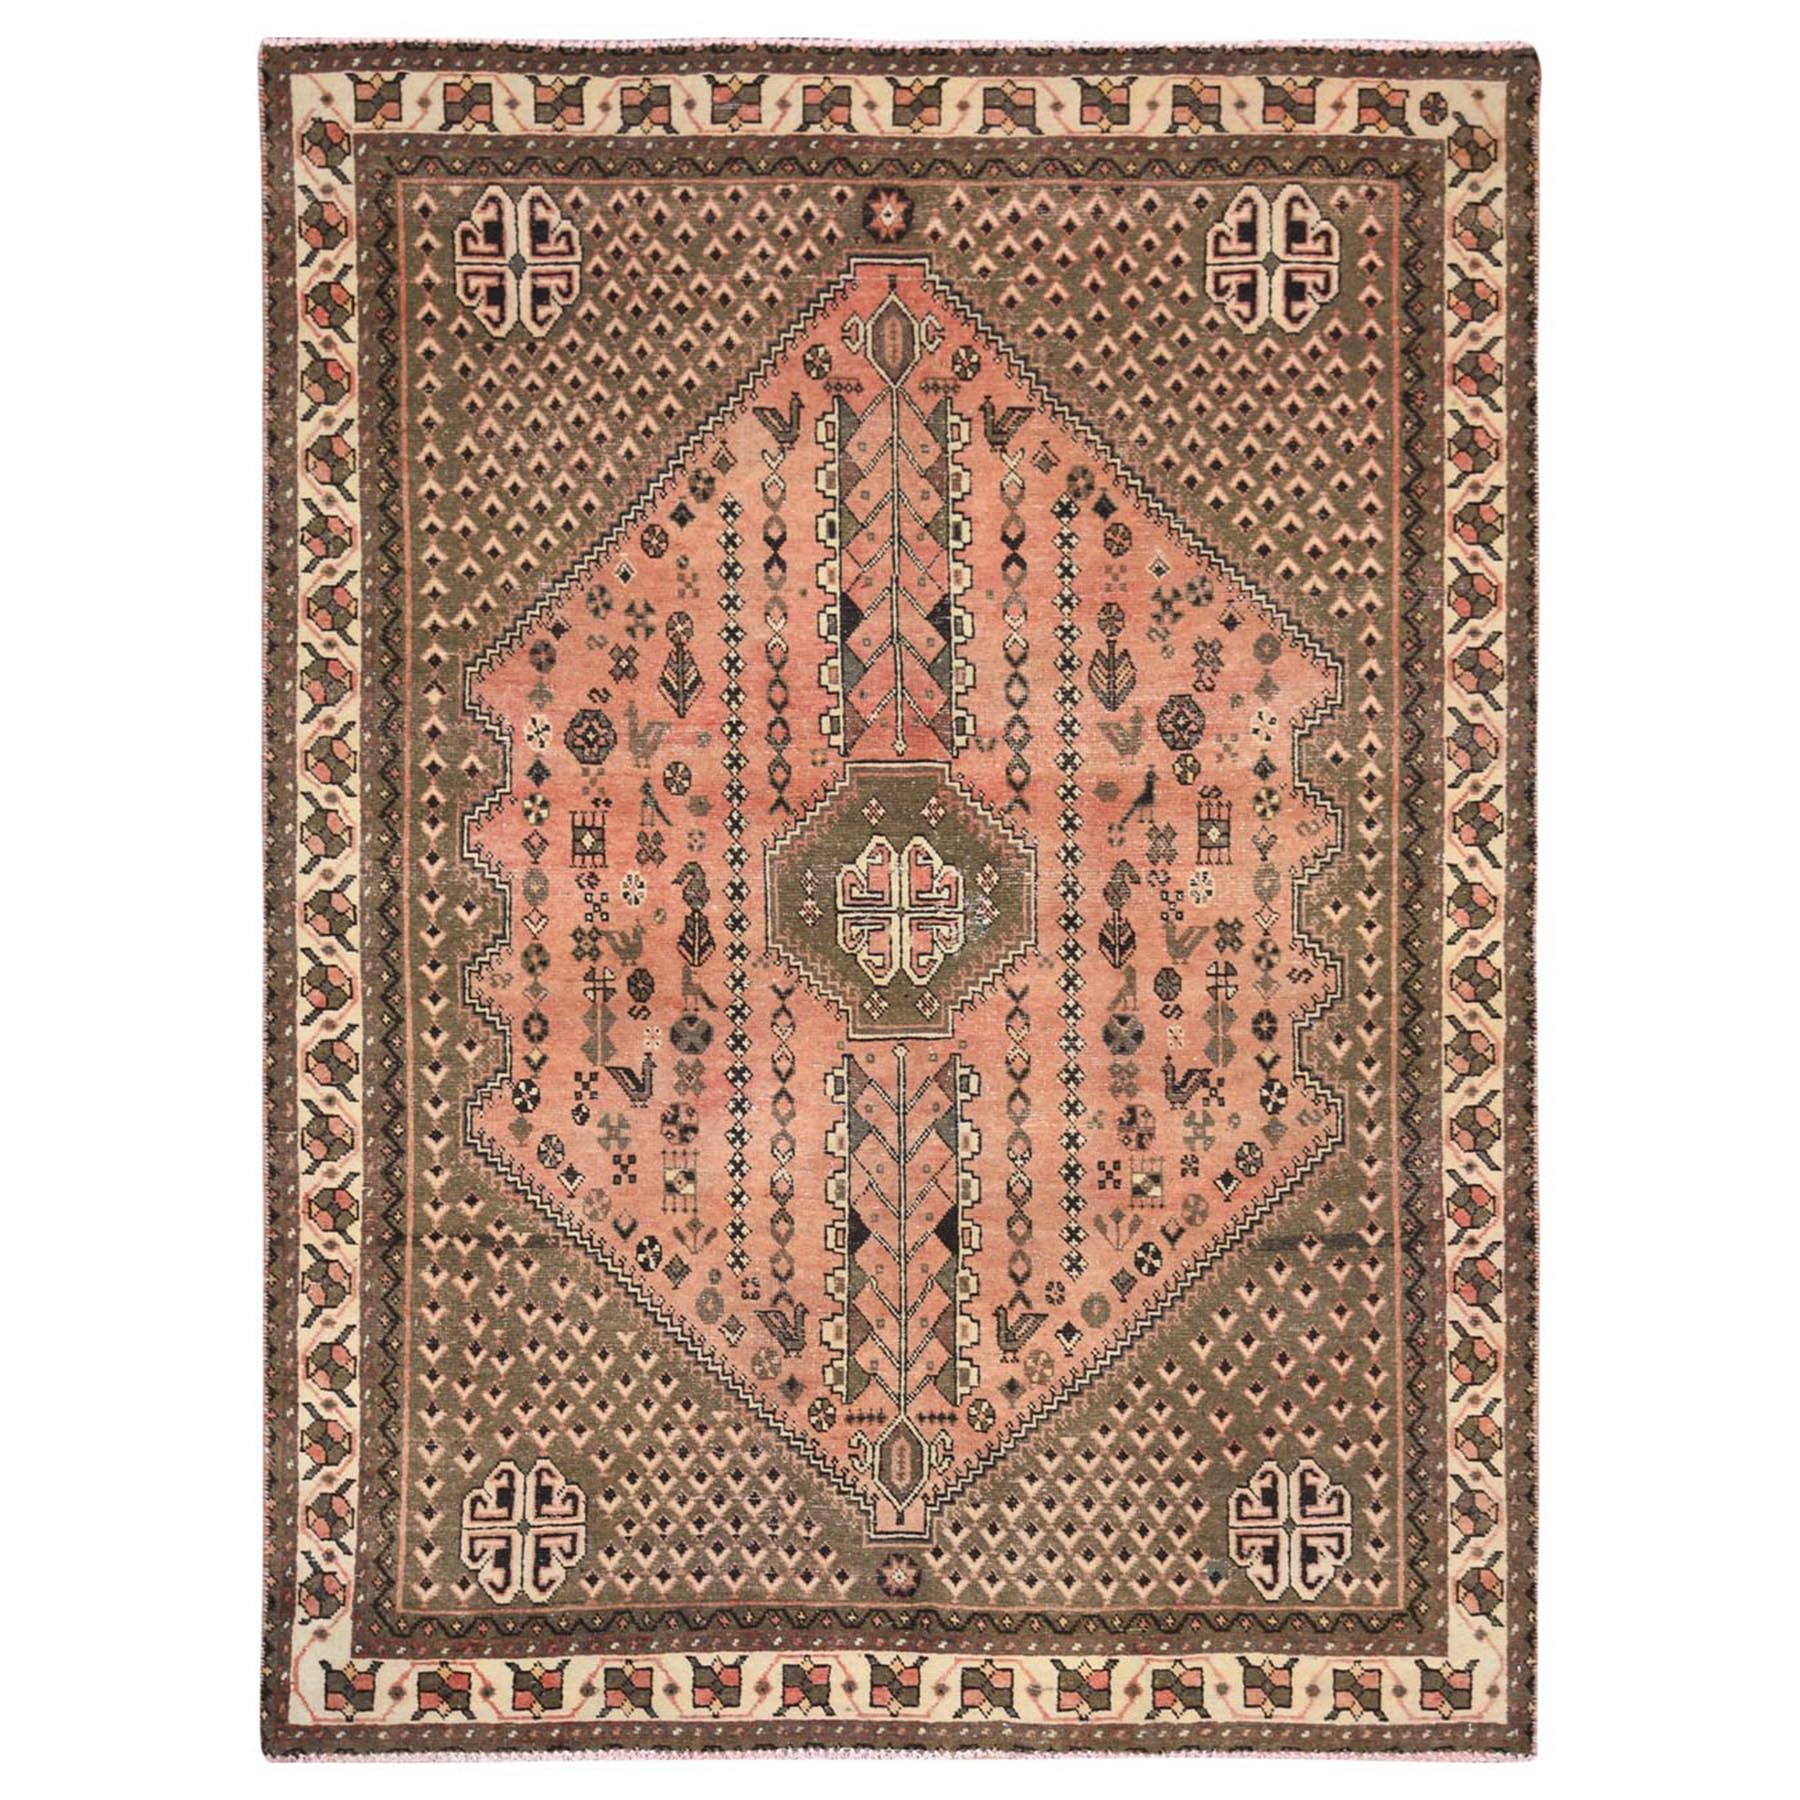 5'x7' Semi Antique Peach Color Persian Qashqai Distressed Natural Wool Bohemian Clean Hand Knotted Oriental Rug